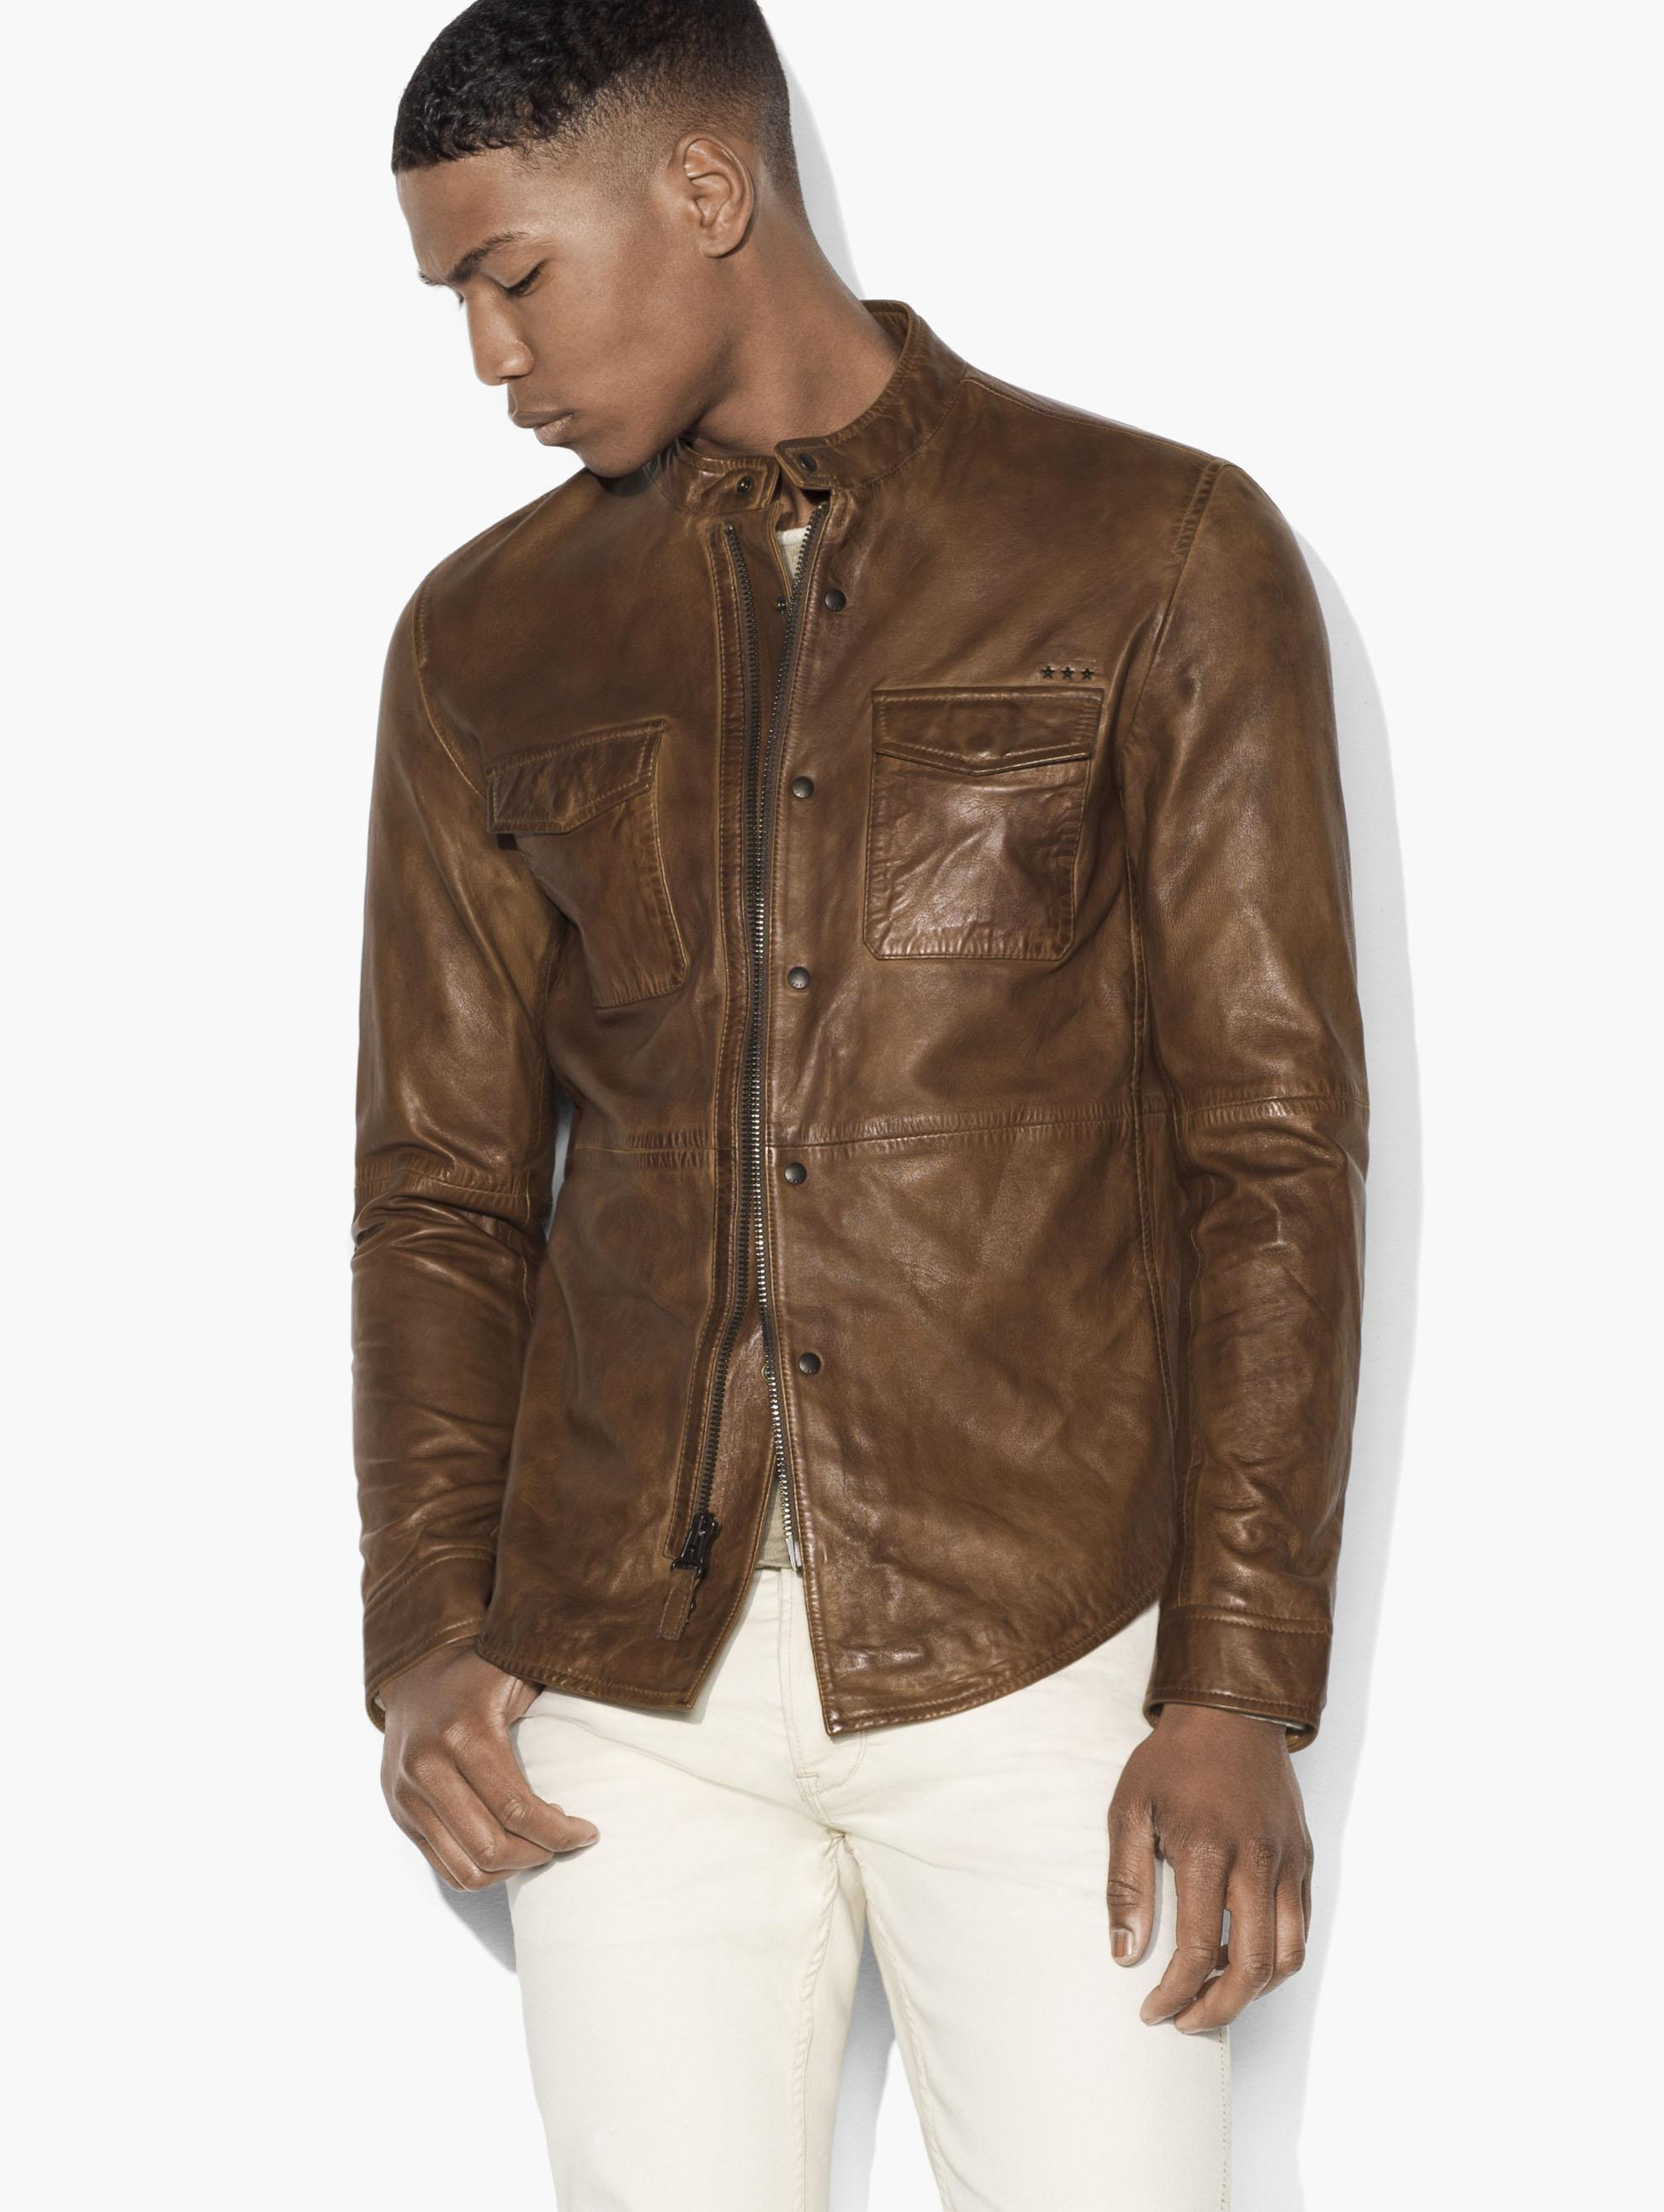 John varvatos burnished leather shirt jacket in brown for for Leather jacket and shirt